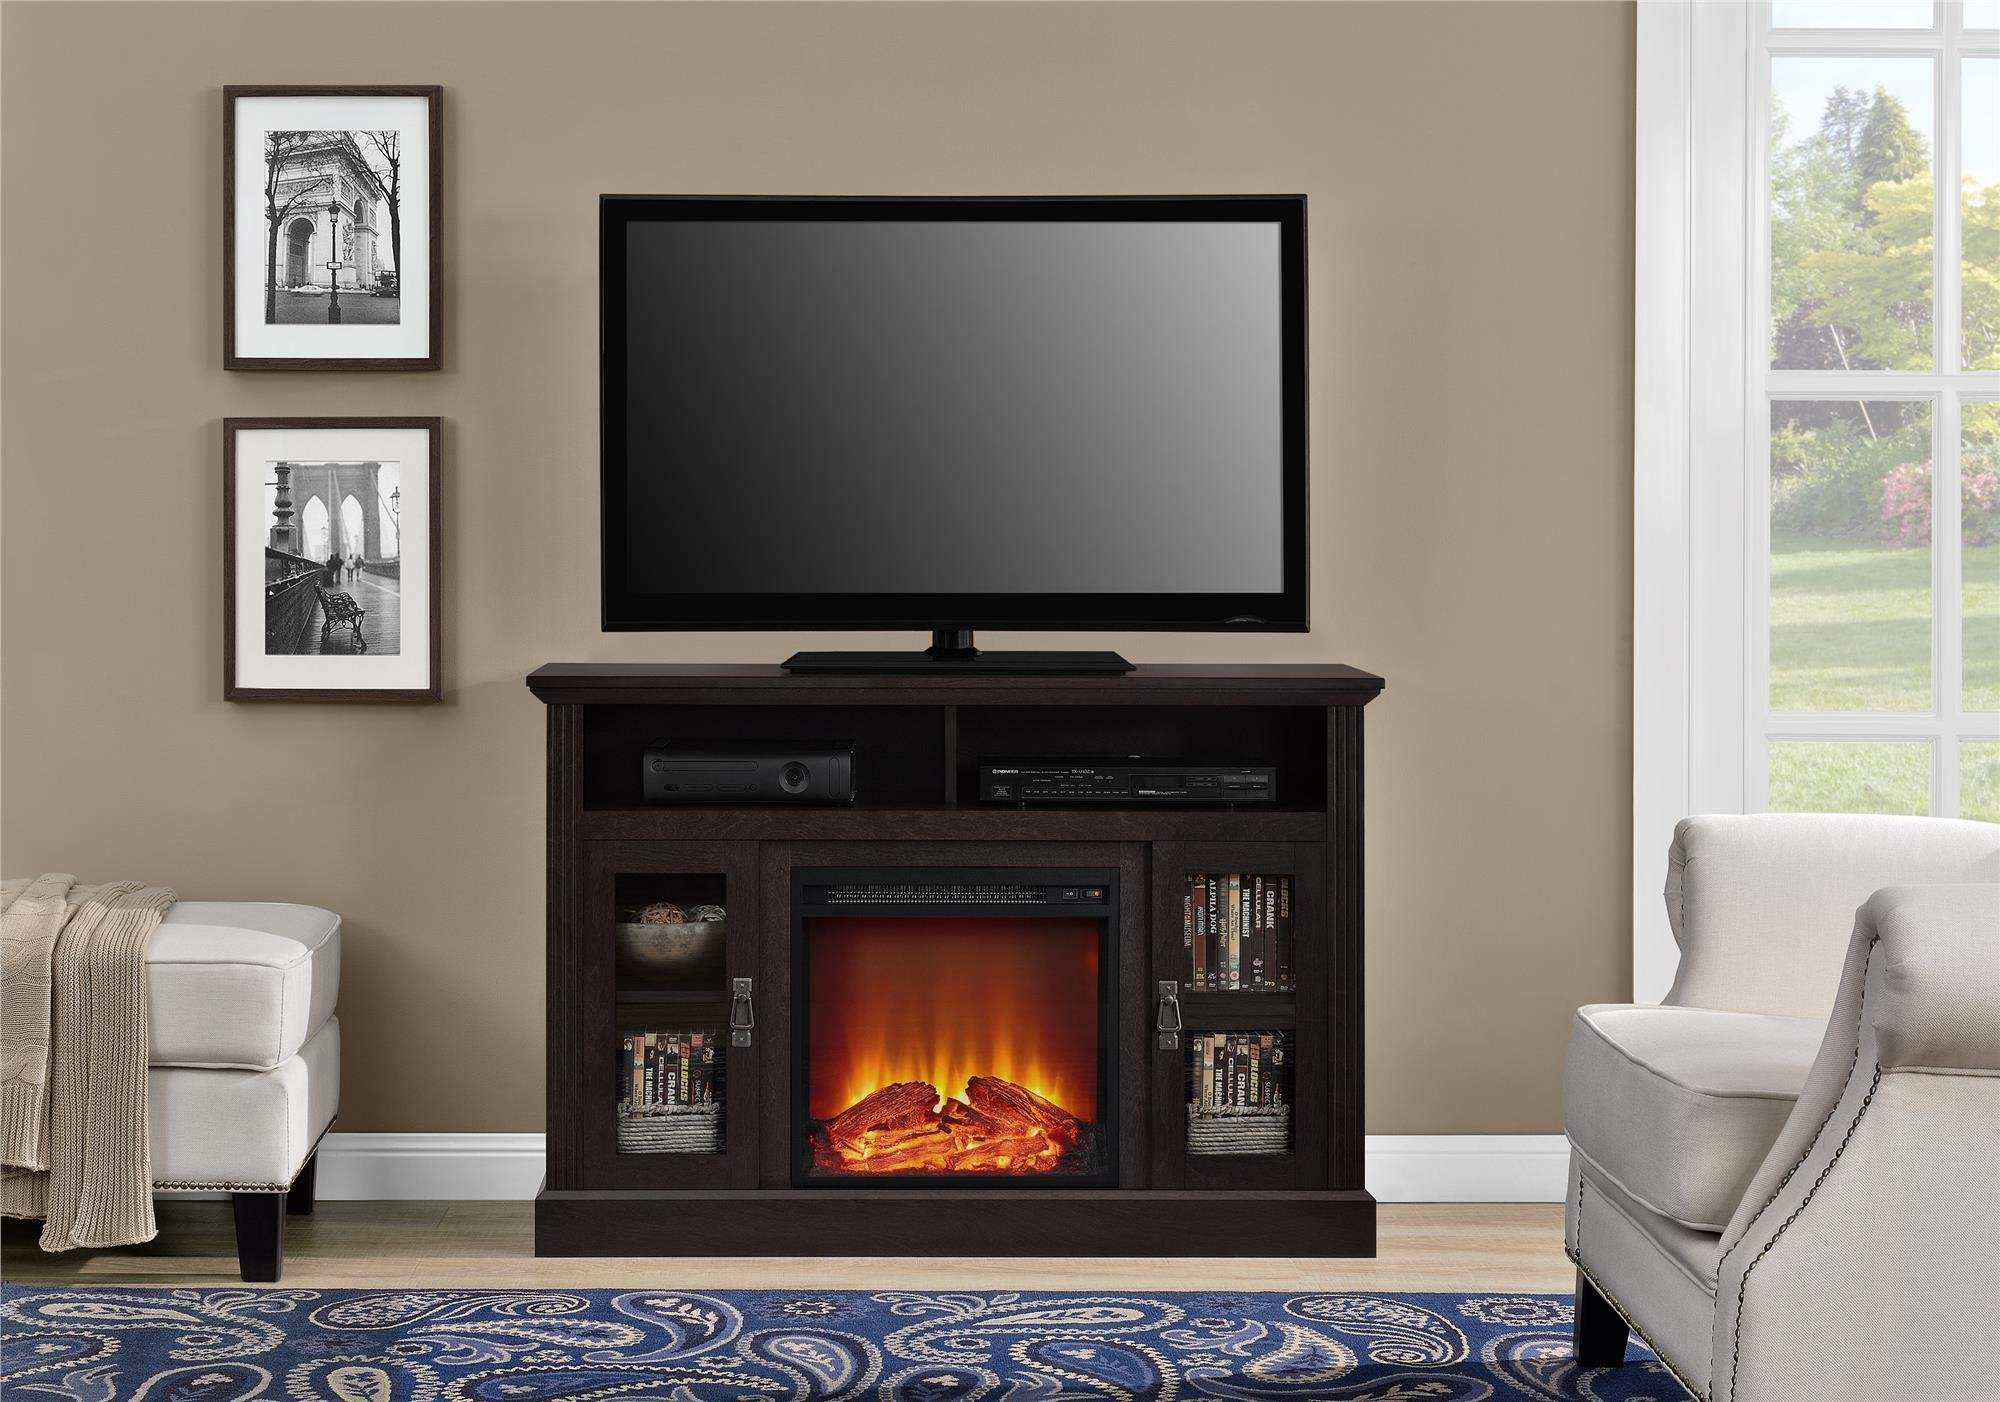 Ameriwood Home Chicago Electric Fireplace TV Console for TVs up to a 50'', Espresso by Ameriwood Home (Image #2)